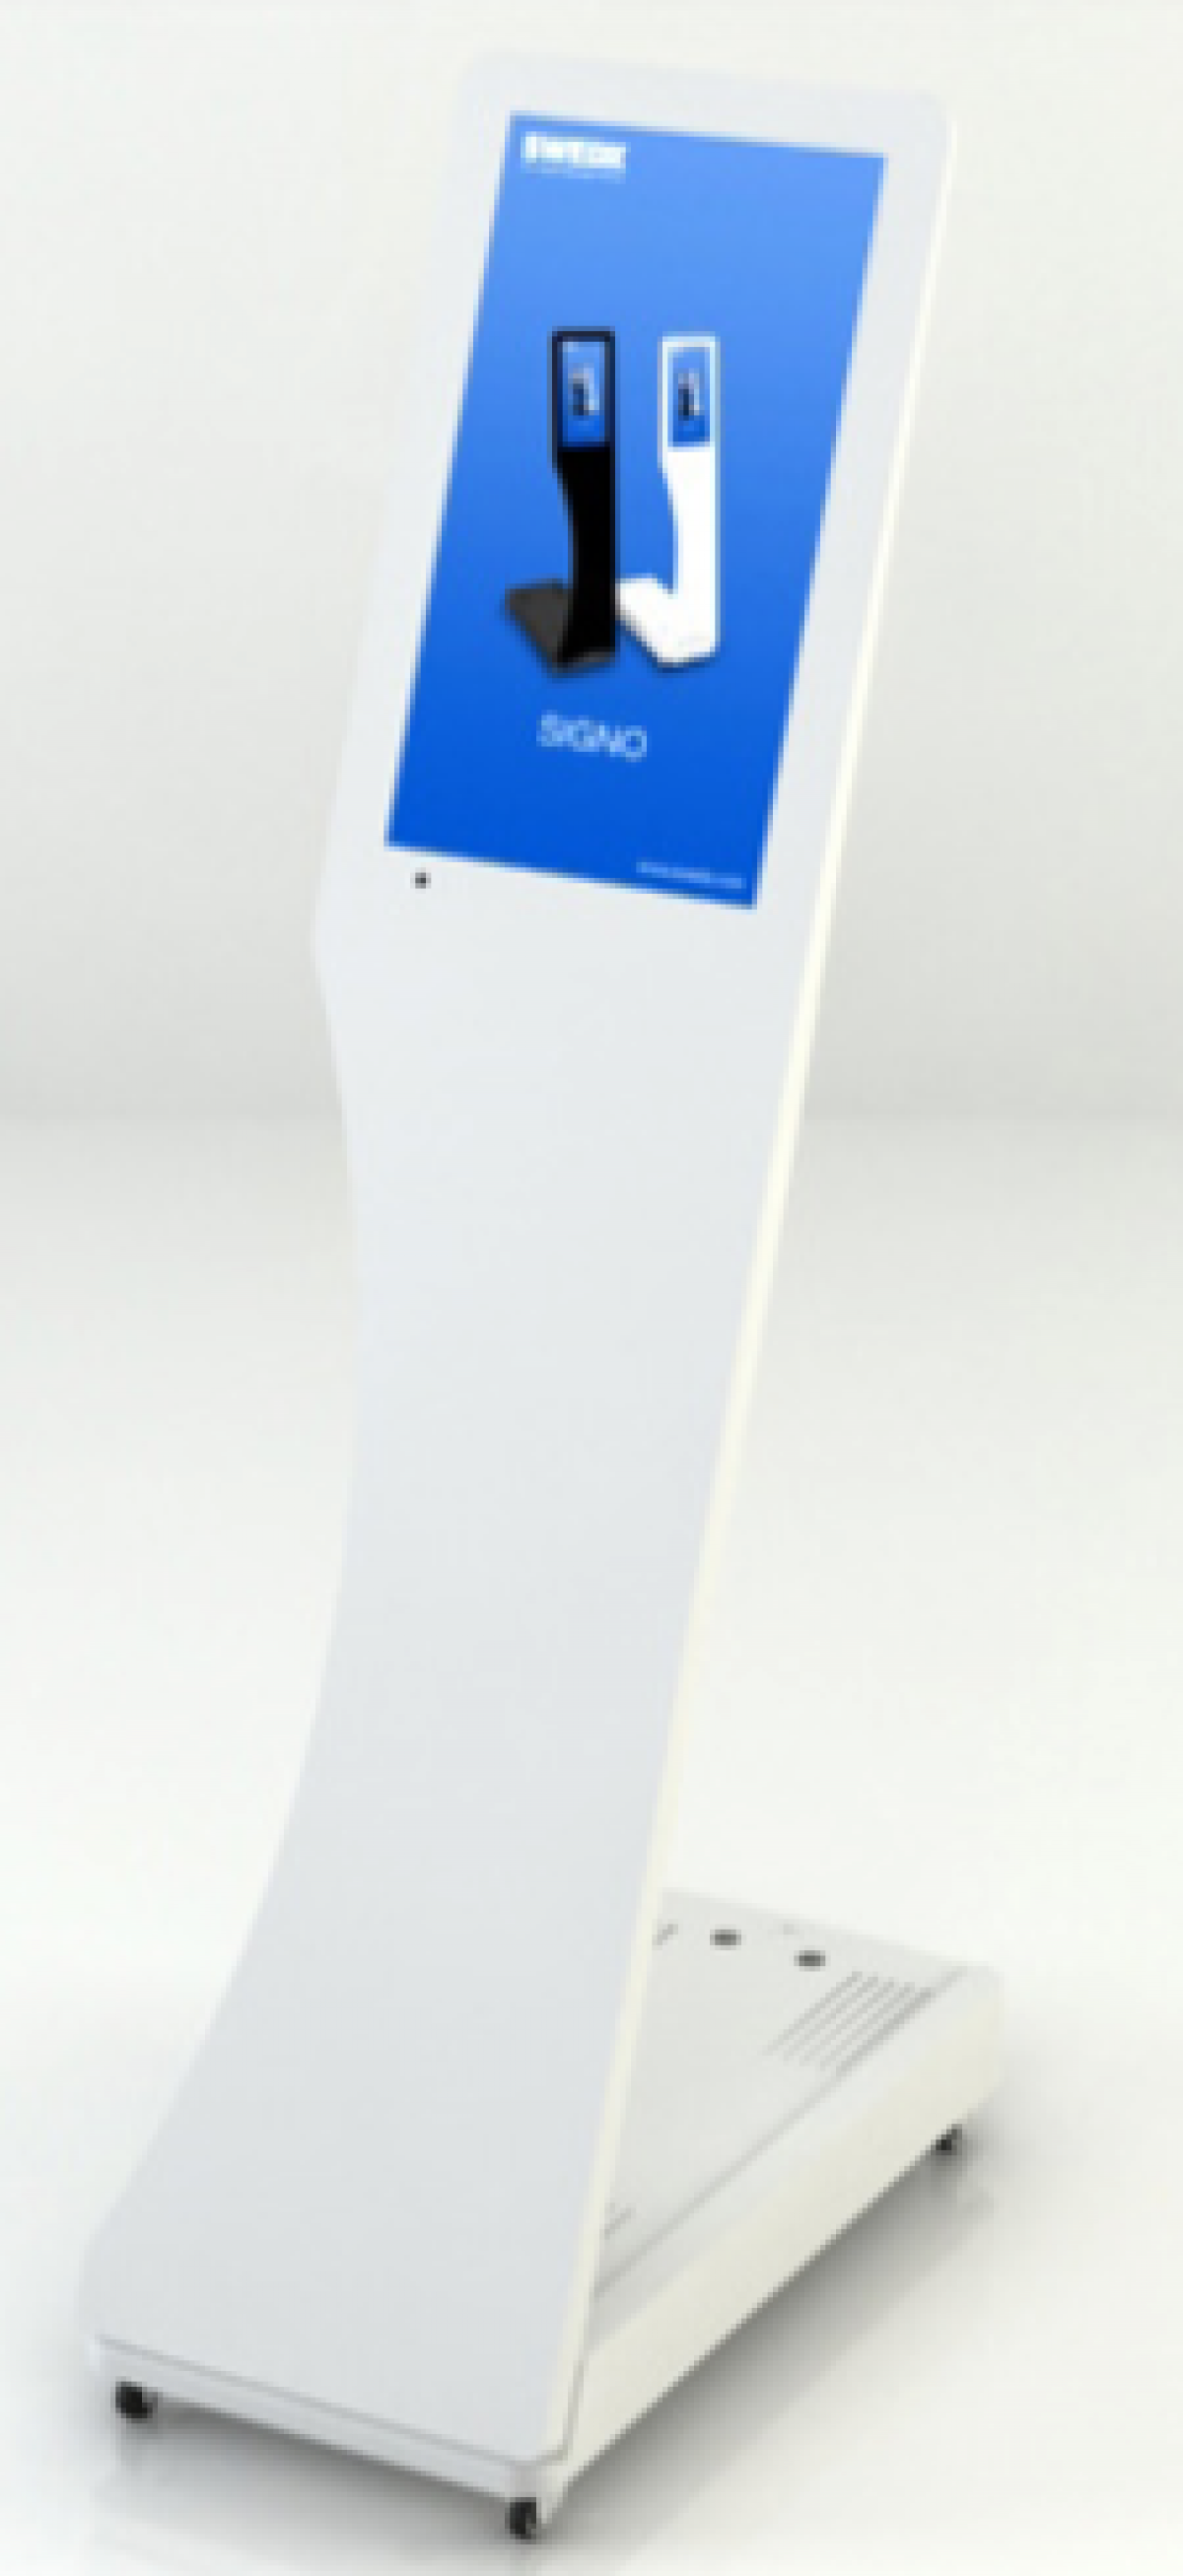 TOTEM SWEDX SERIE SIGNO - NON TOUCH - SWSS156-A1